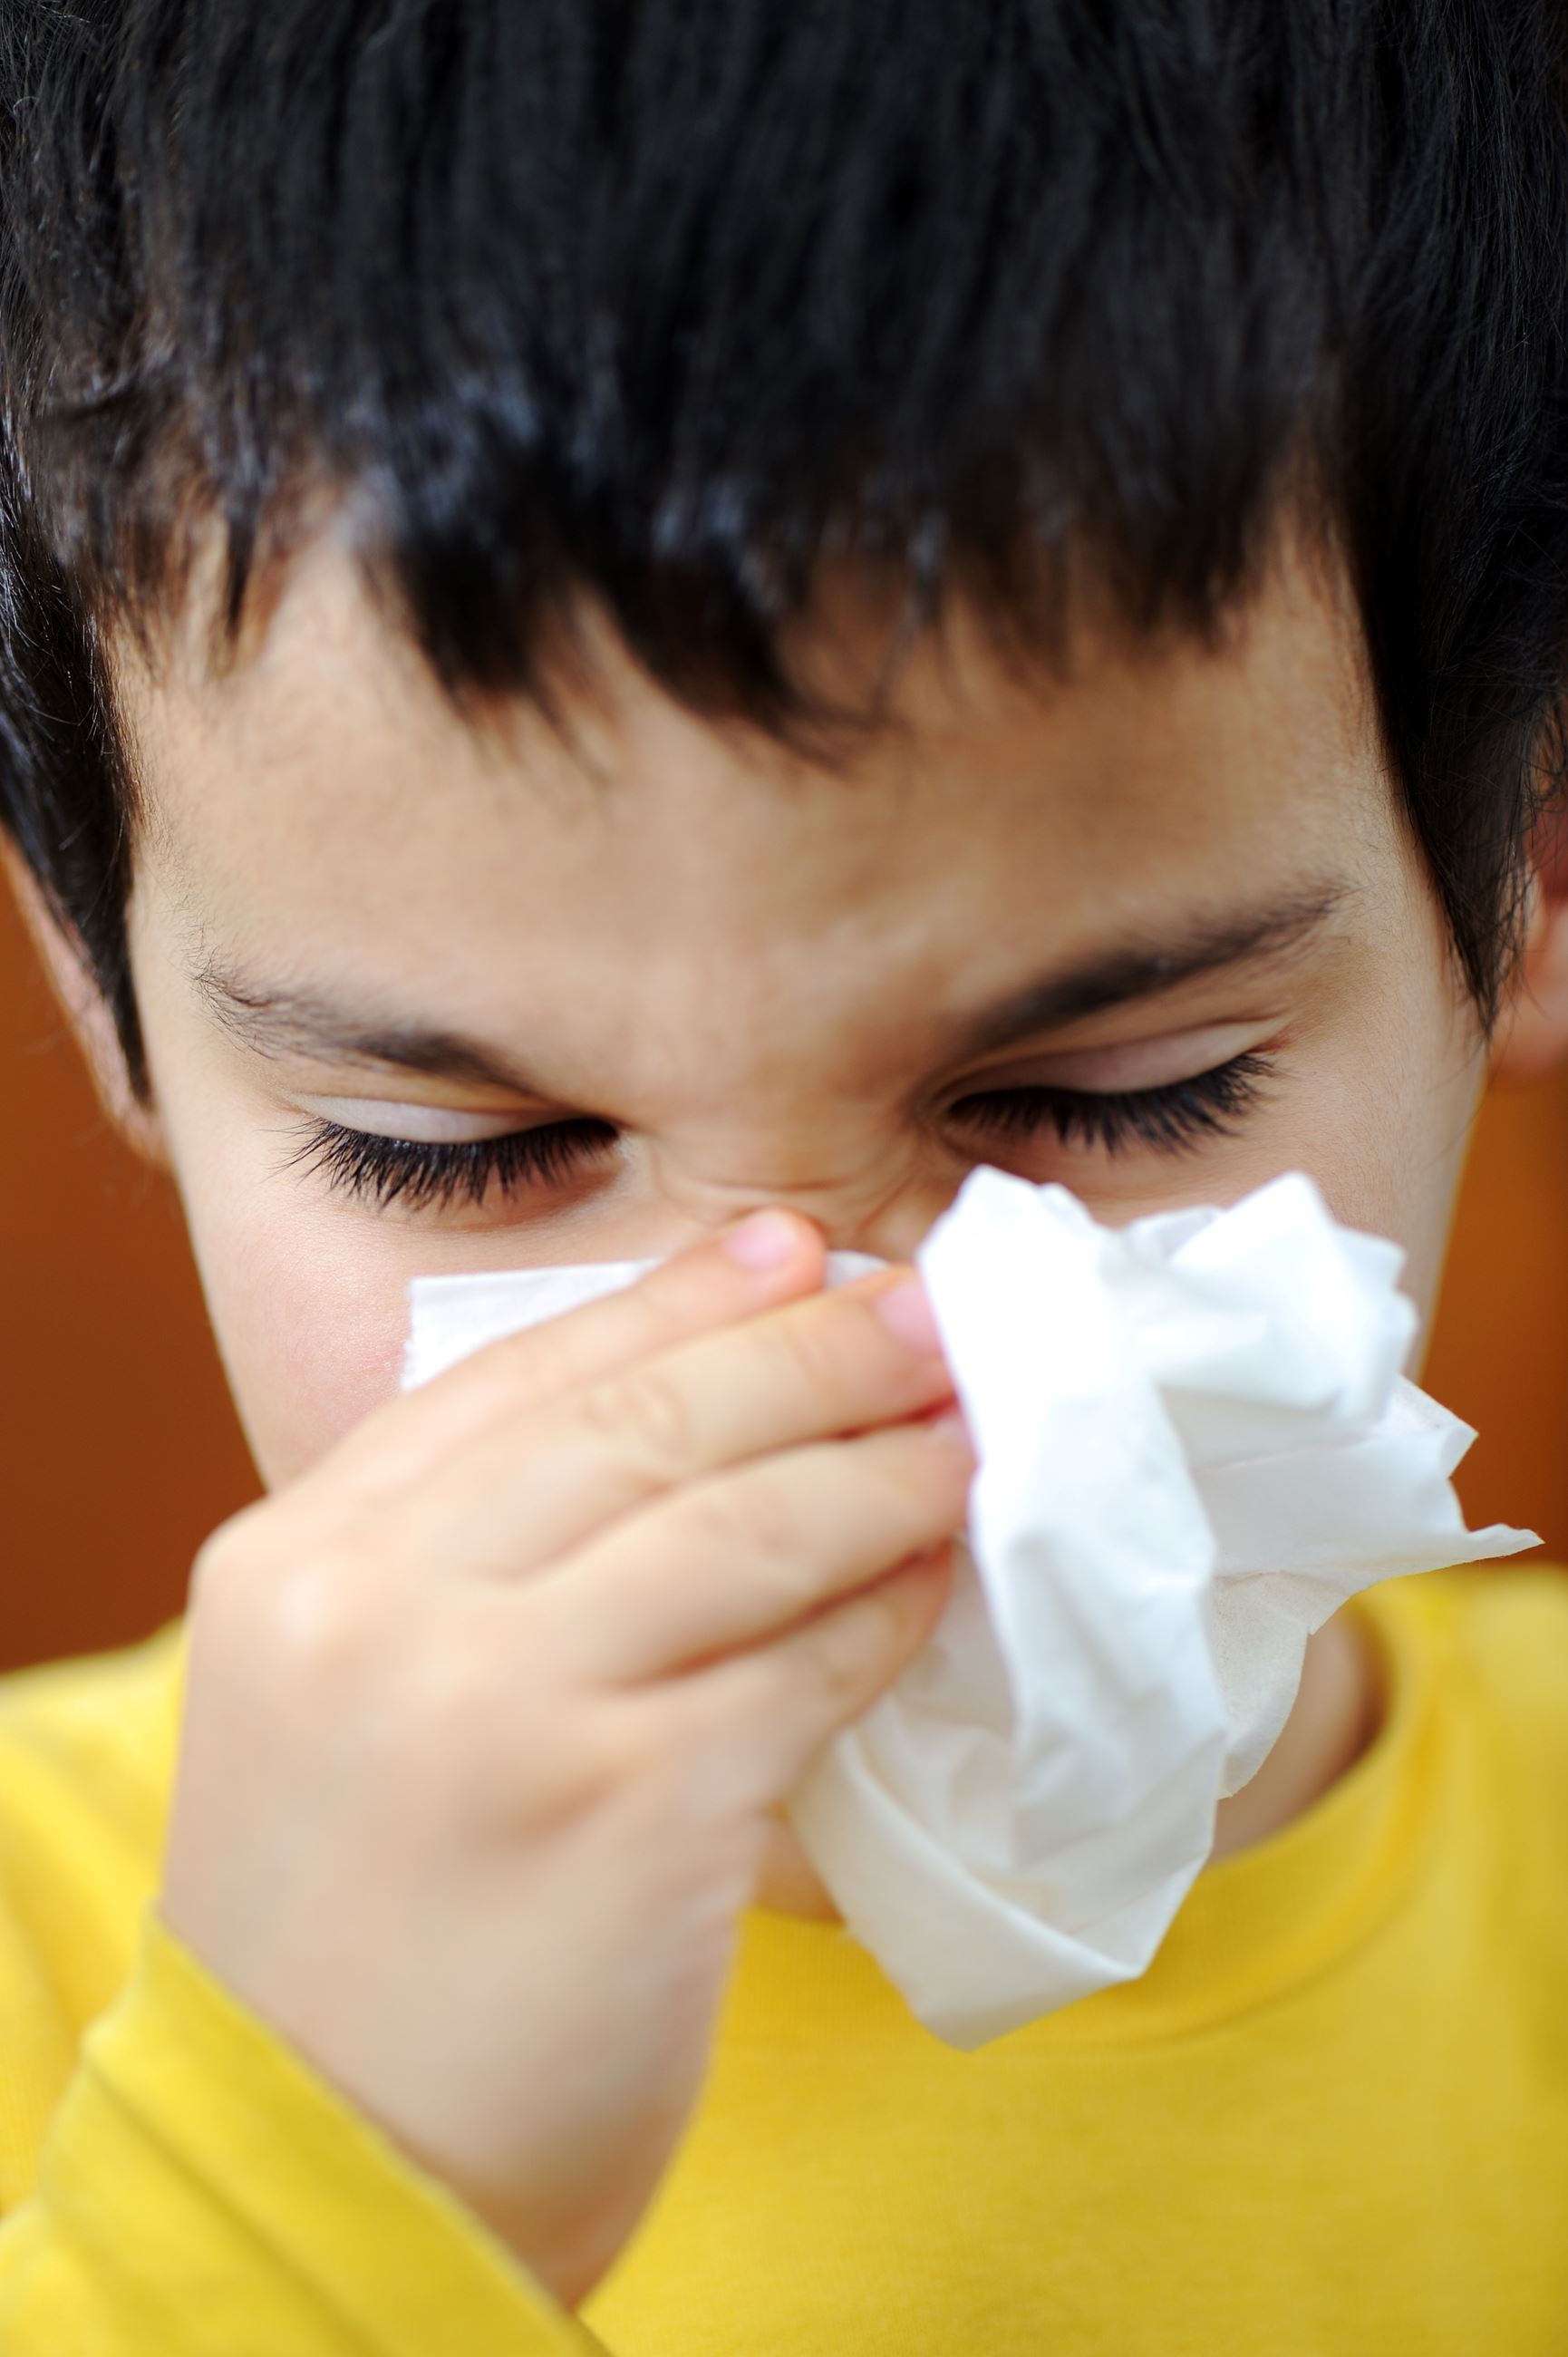 Boy sick with the flu blowing his nose